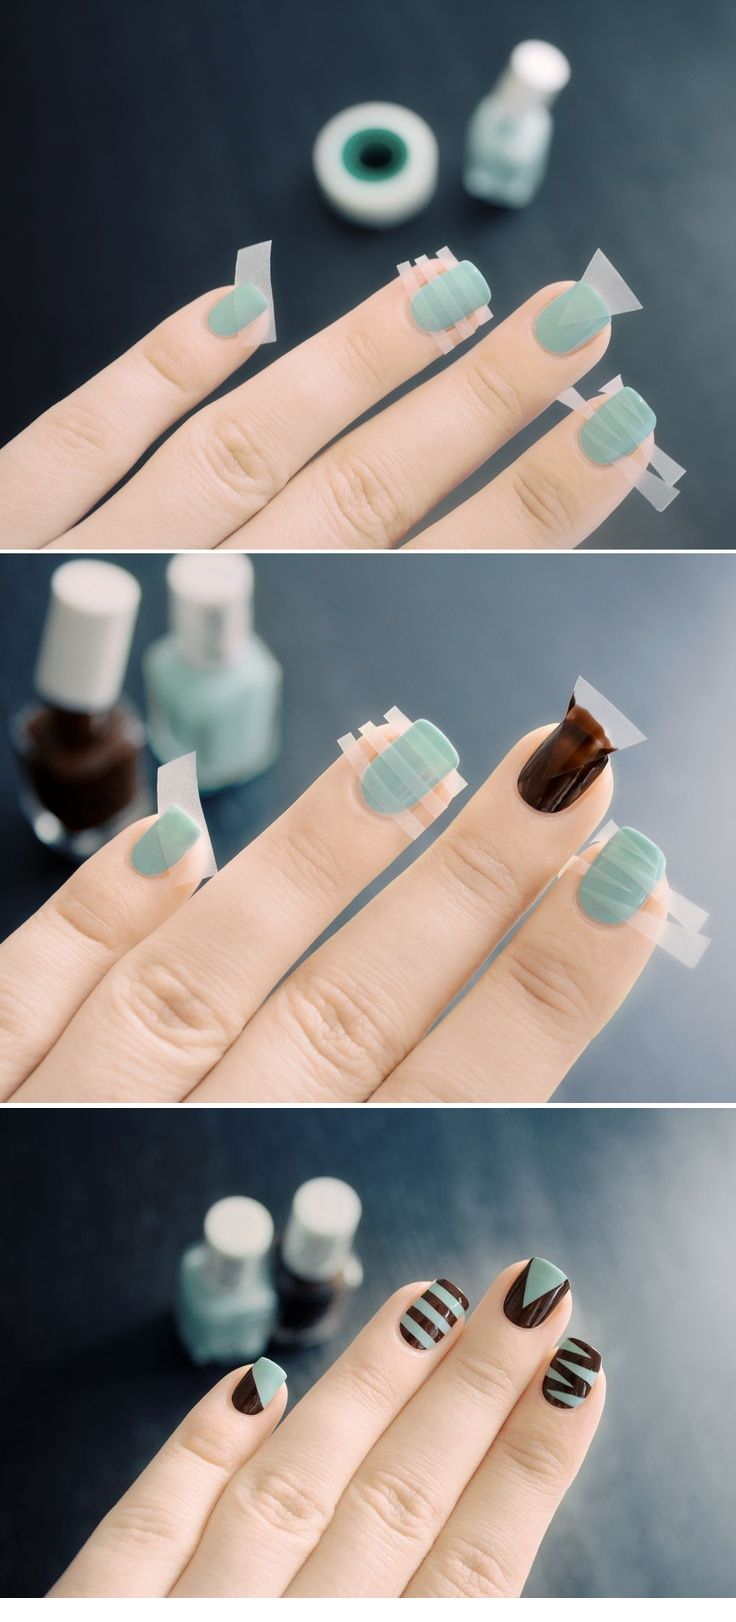 The coolest Manis can happen thanks to tape.